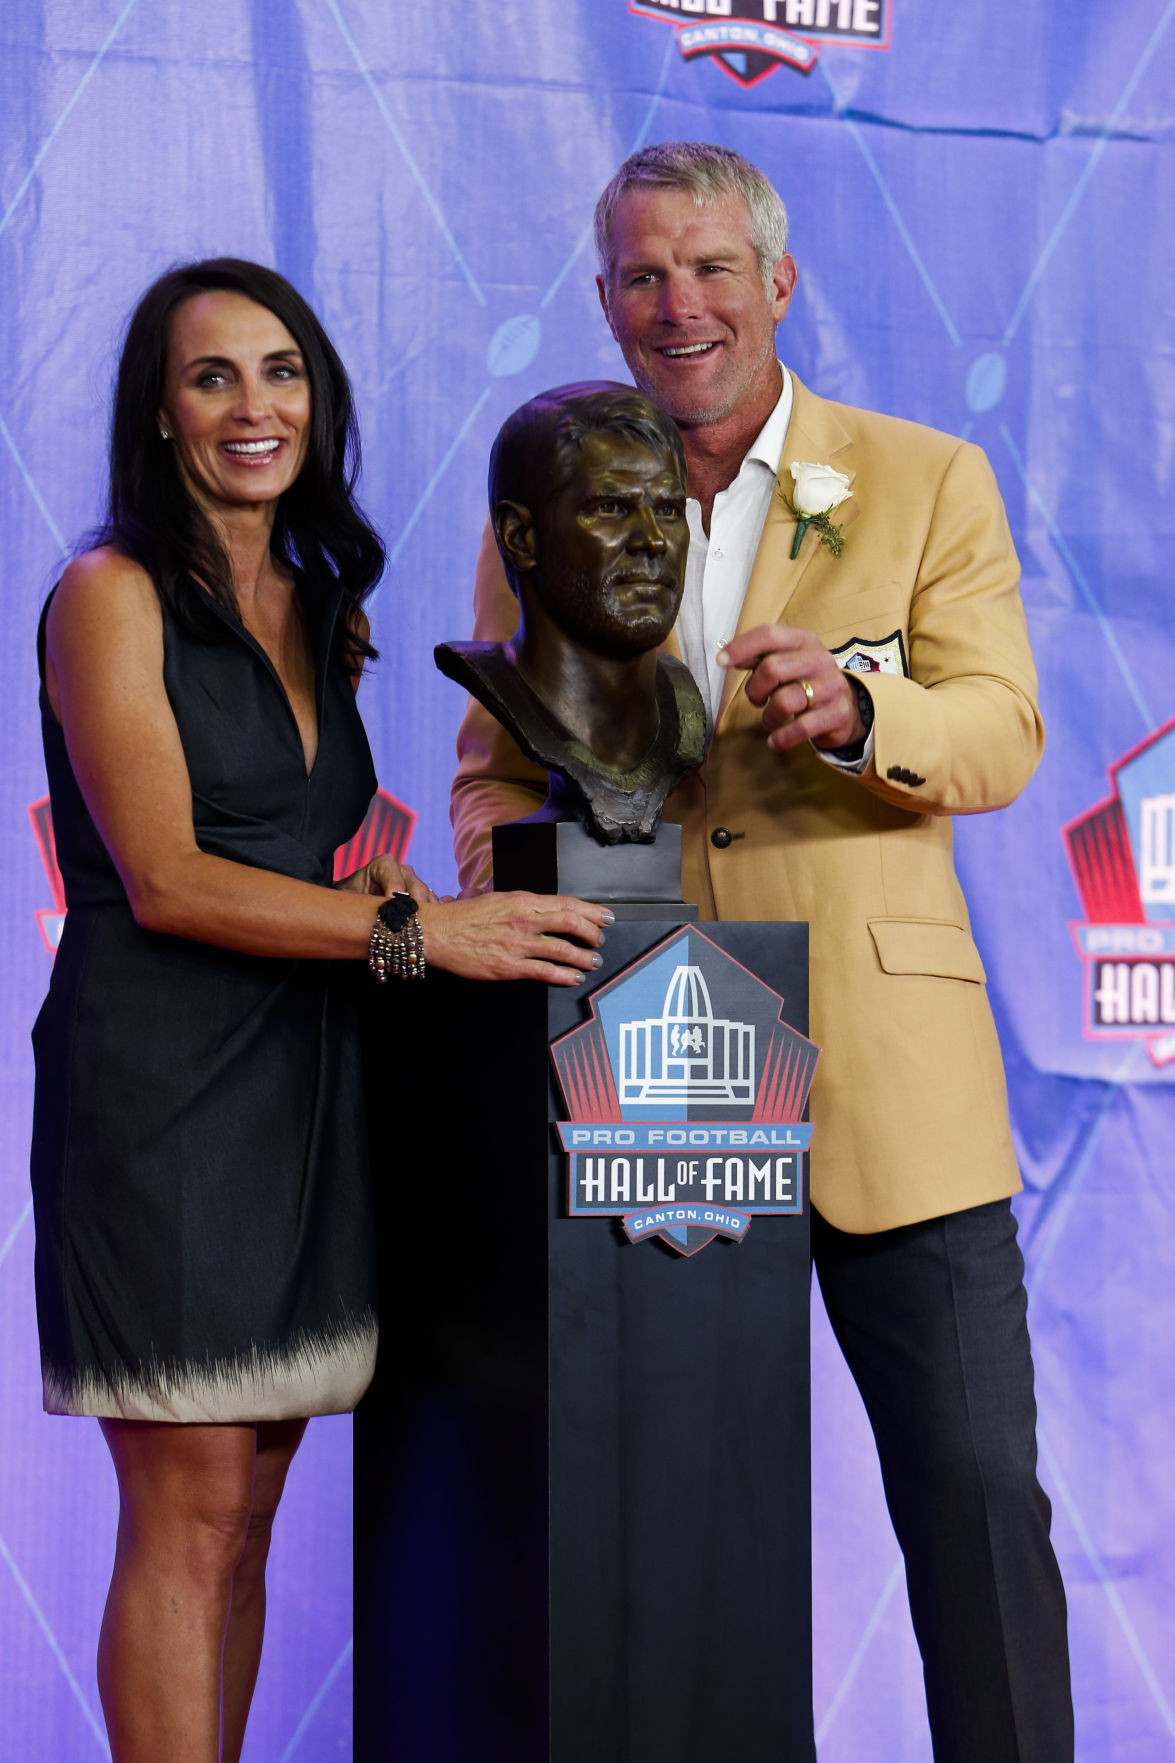 Favre's spot in Hall of Fame all about his father